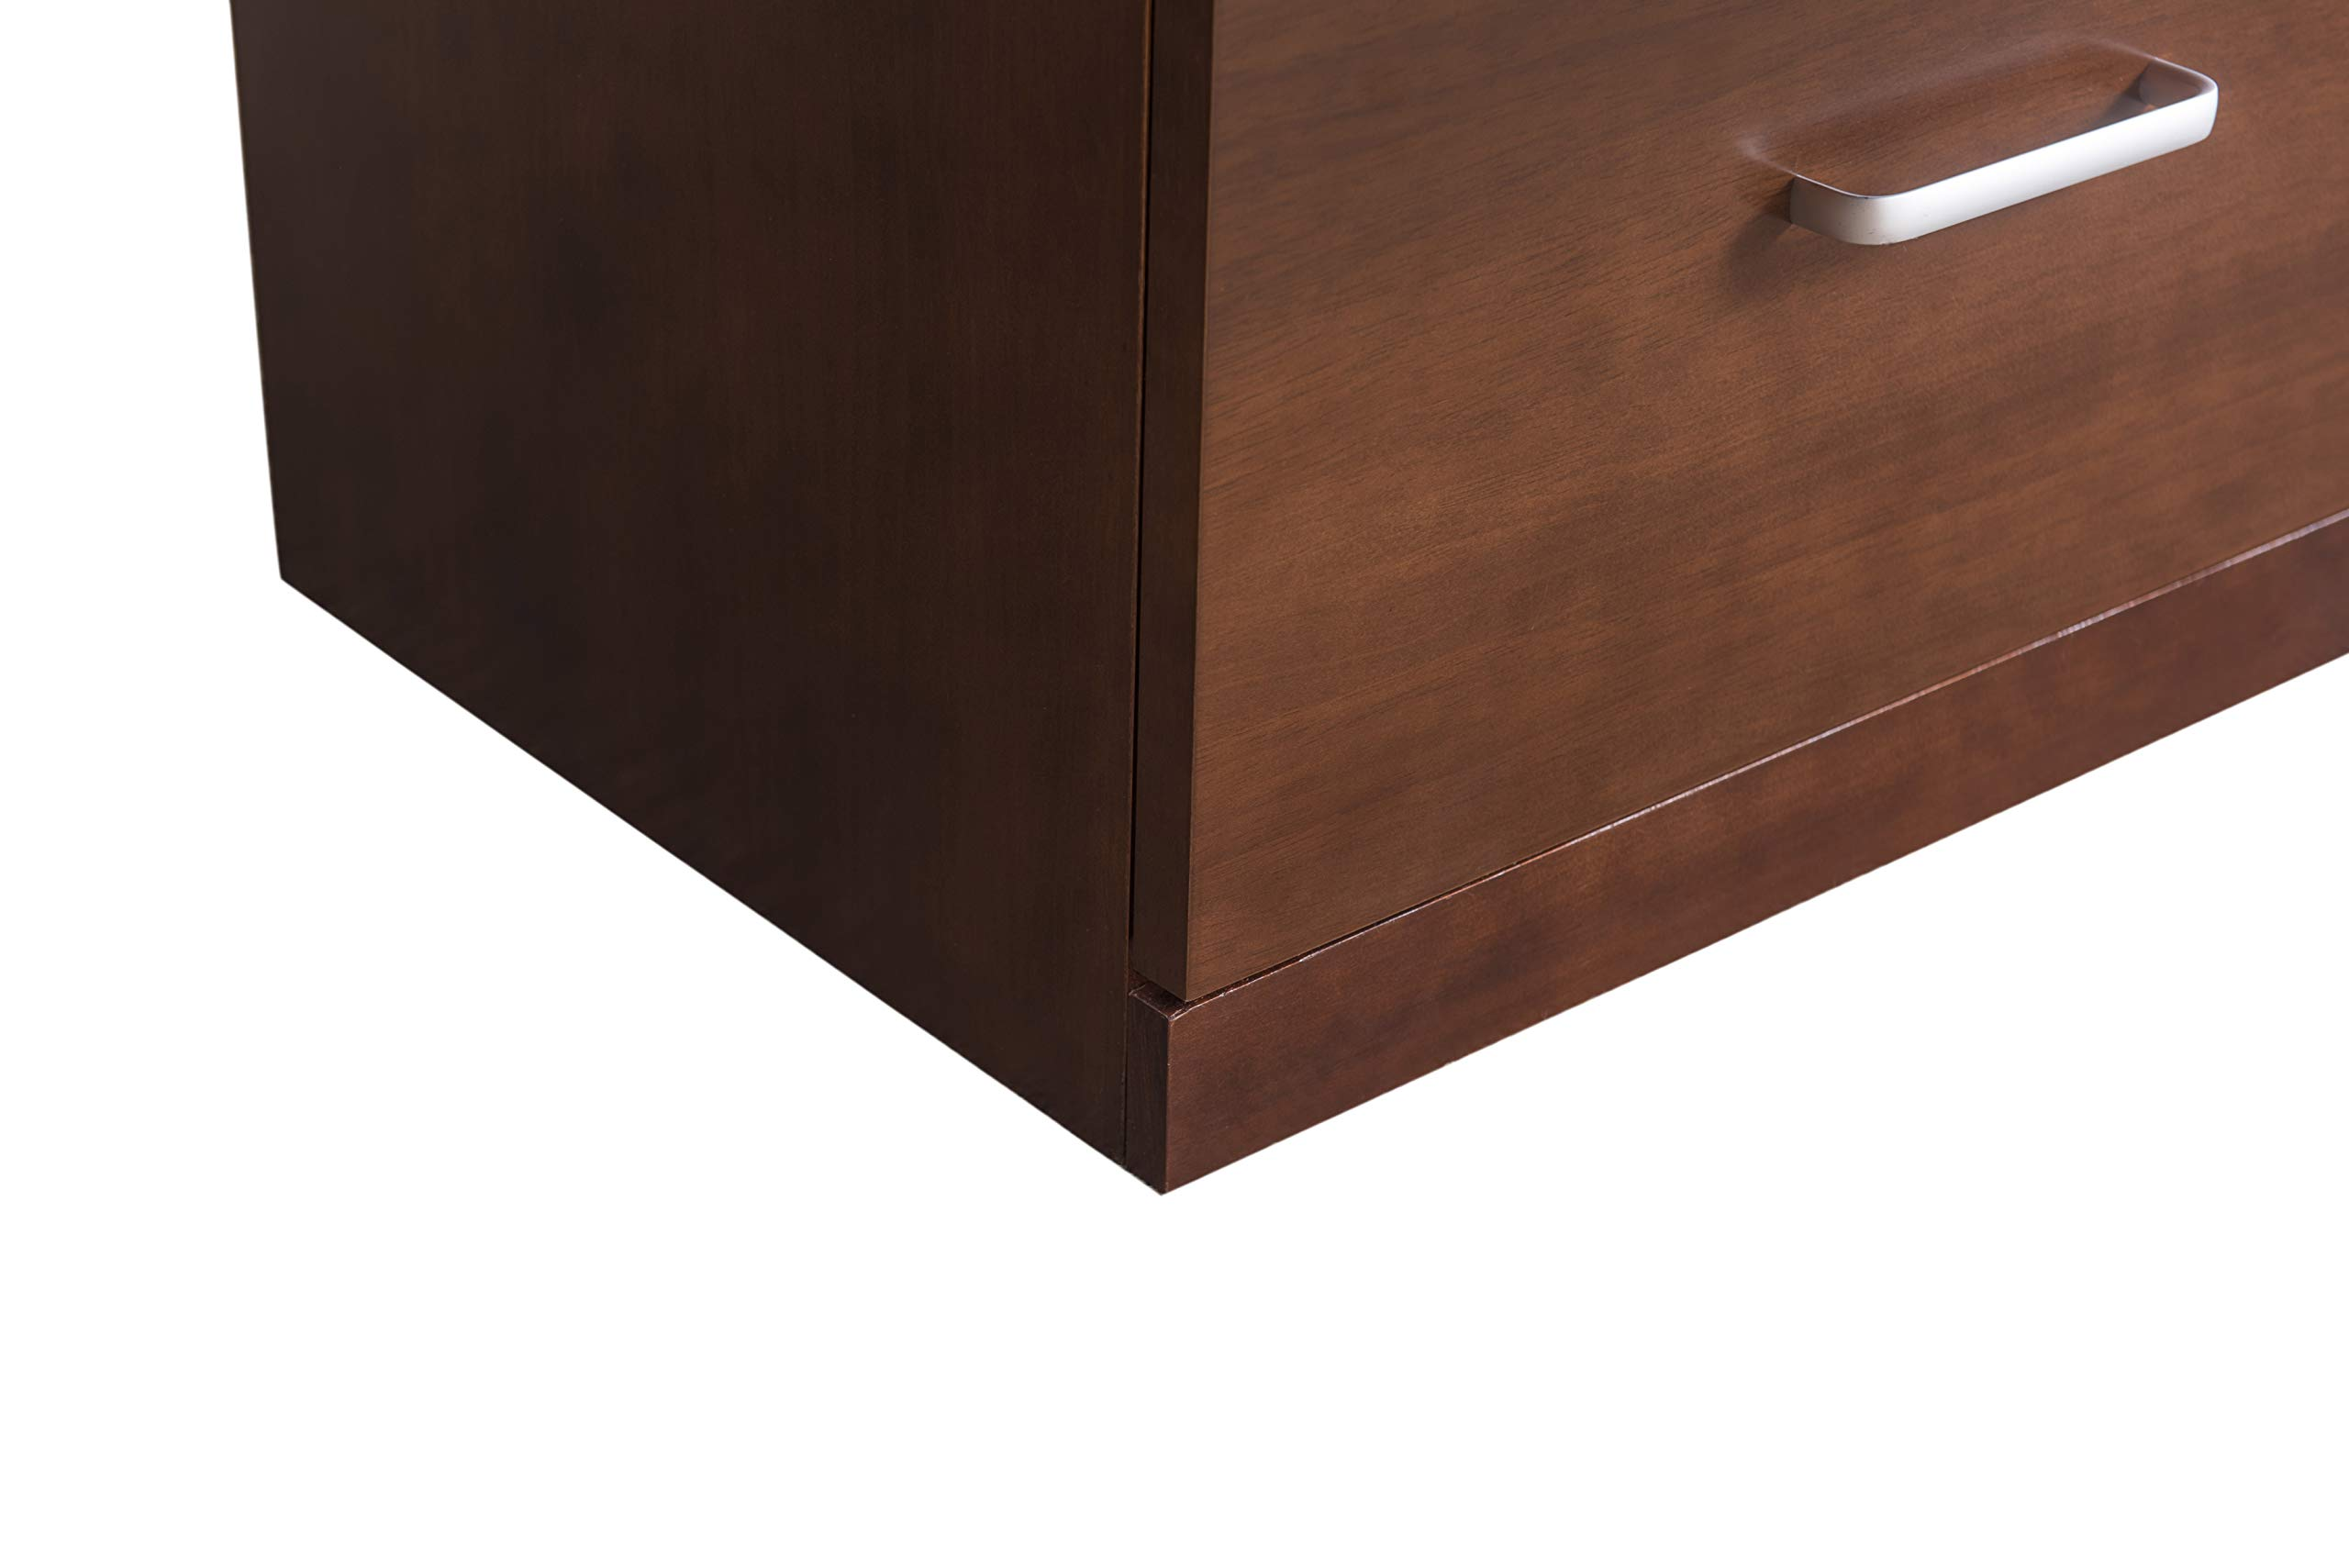 2L Lifestyle Henley File Cabinet, Brown by 2L Lifestyle (Image #9)